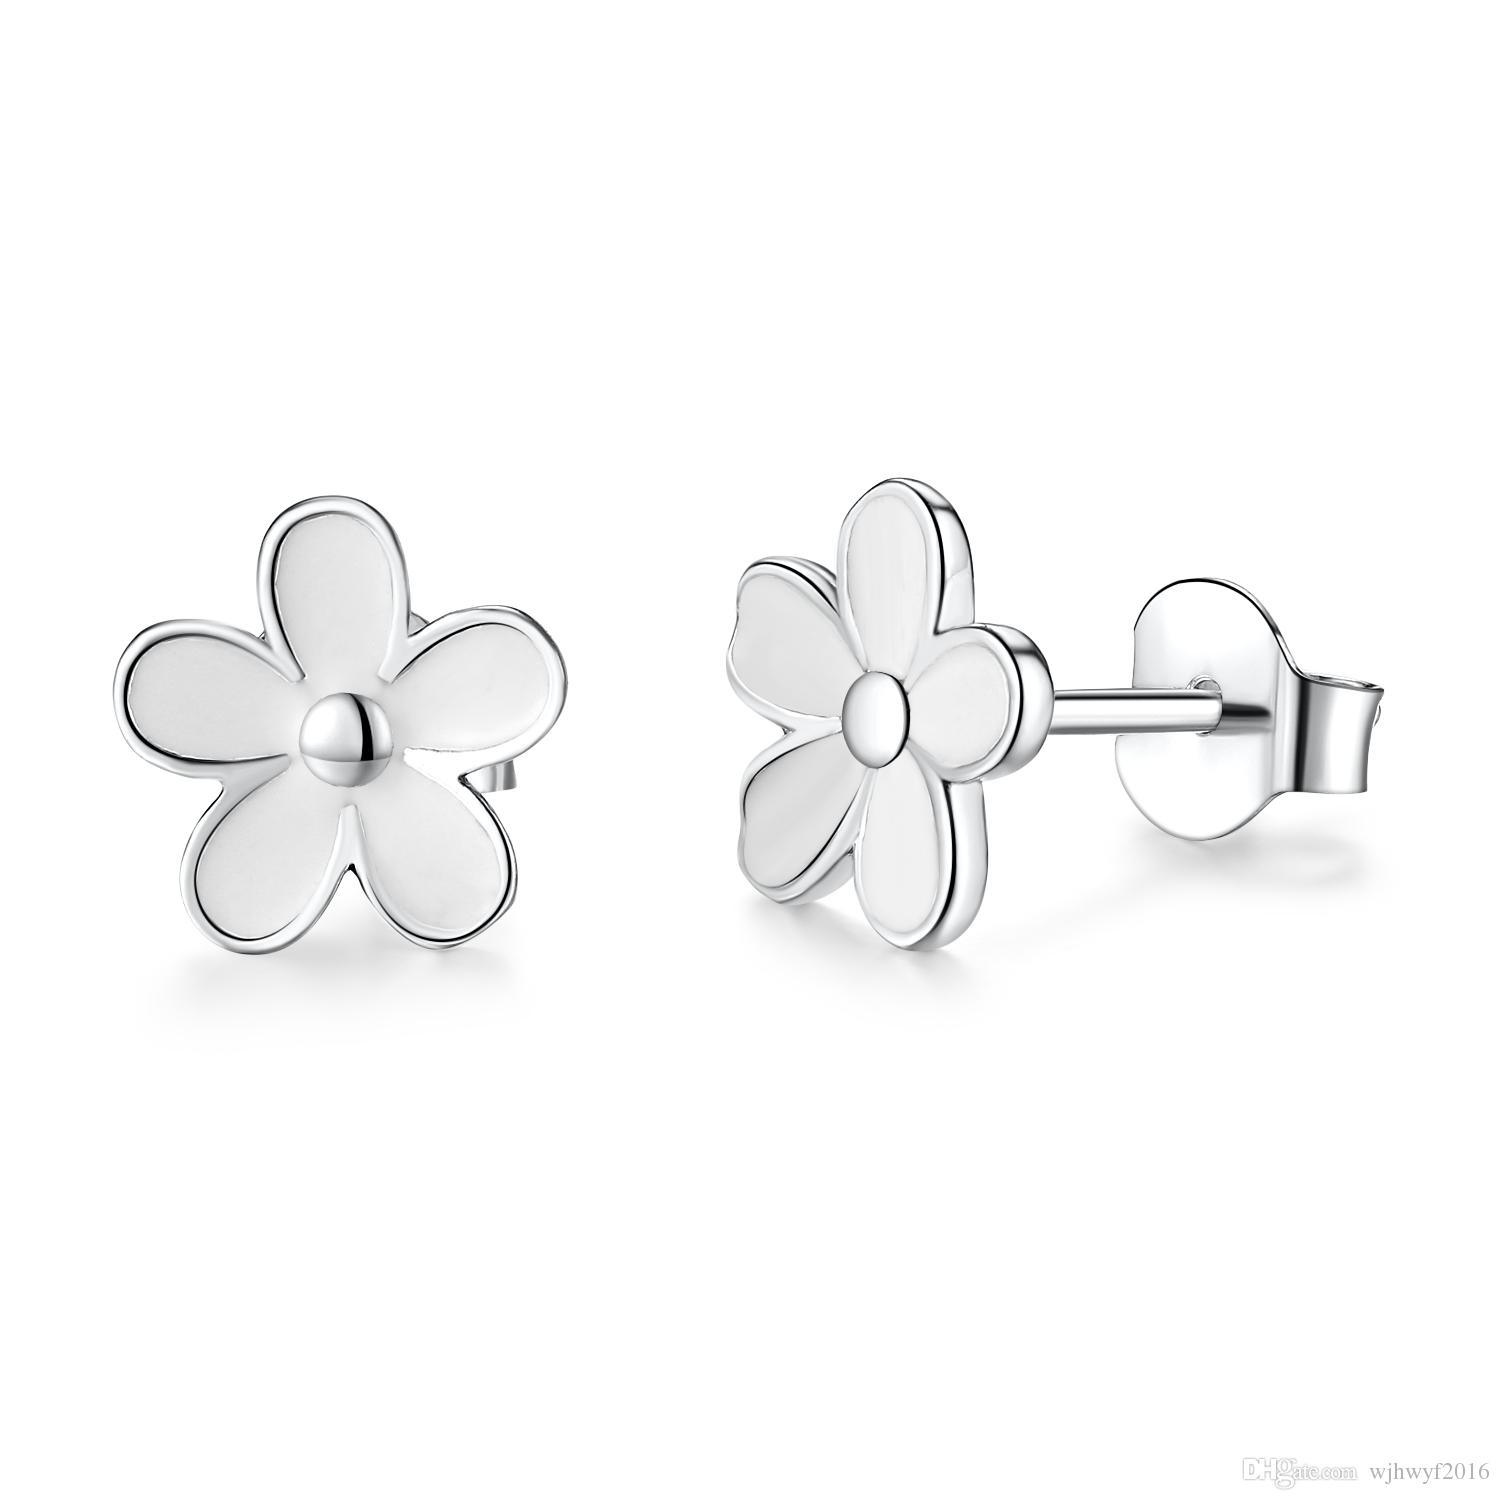 0c7253e0e 2018 New Spring Authentic 925 Sterling Silver White Daisy Stud Earrings For  Women Enamel Flower Earrings European Fine Jewelry Stud Earrings 925  Sterling ...